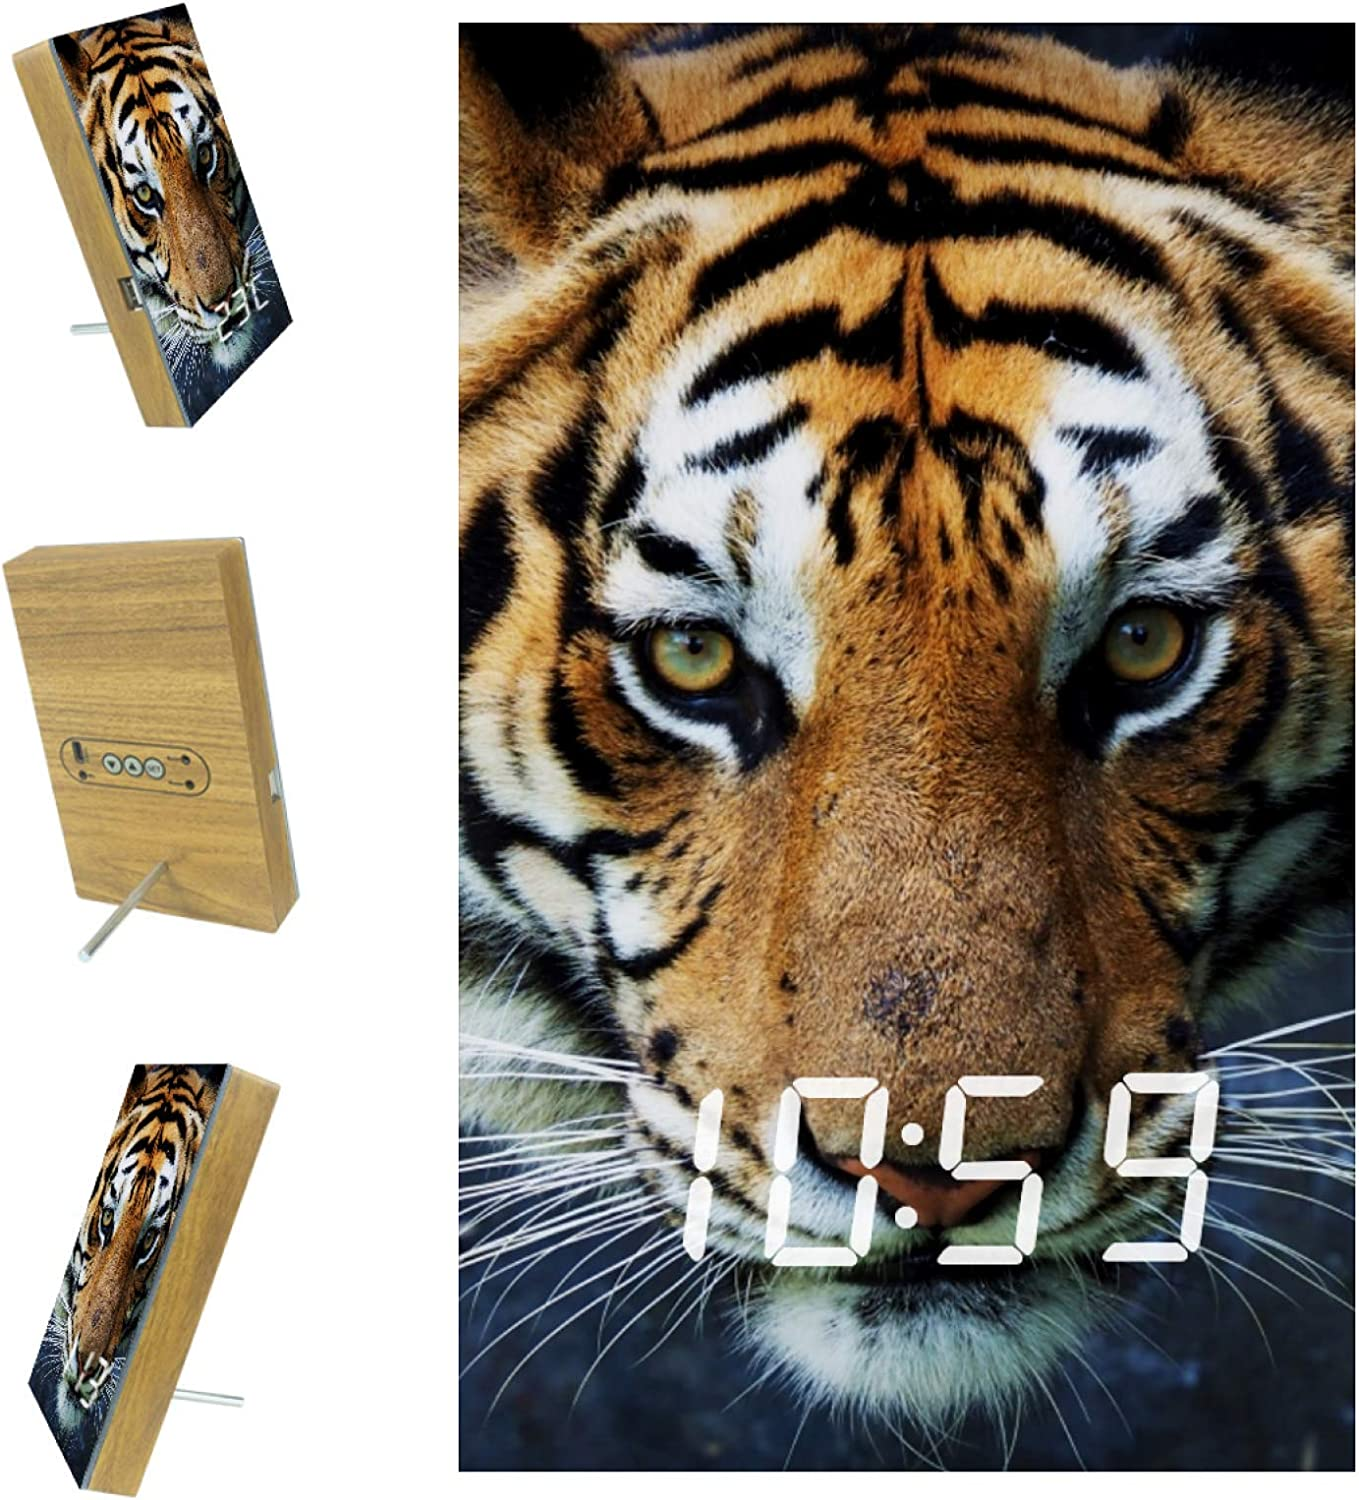 Zuyoon Digital 5 ☆ popular Alarm Clock for Cheap mail order sales USB Animal Charger Bedrooms Tiger